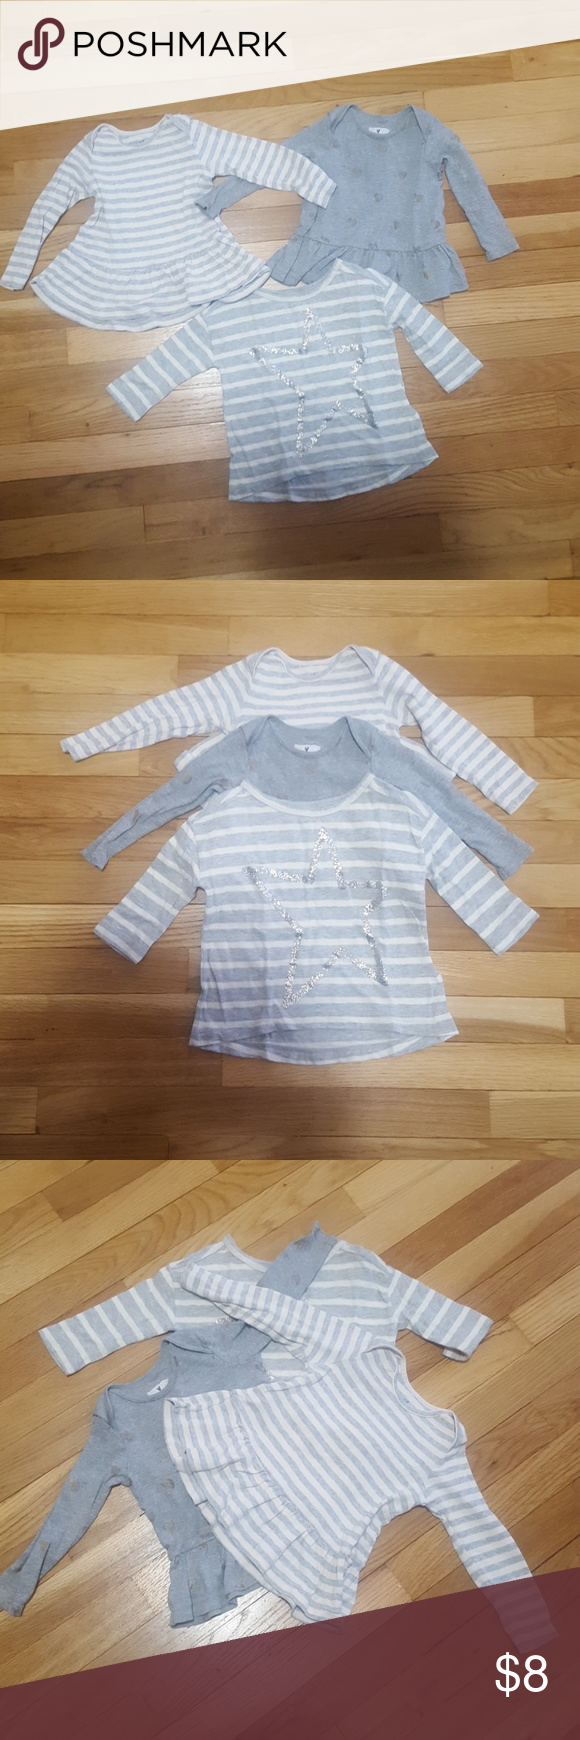 JCrew bundle 3 gently used JCrew baby tops.  The stripped top with the glittery star is size 2. The others are 12-18 months. J. Crew Shirts & Tops Tees - Long Sleeve